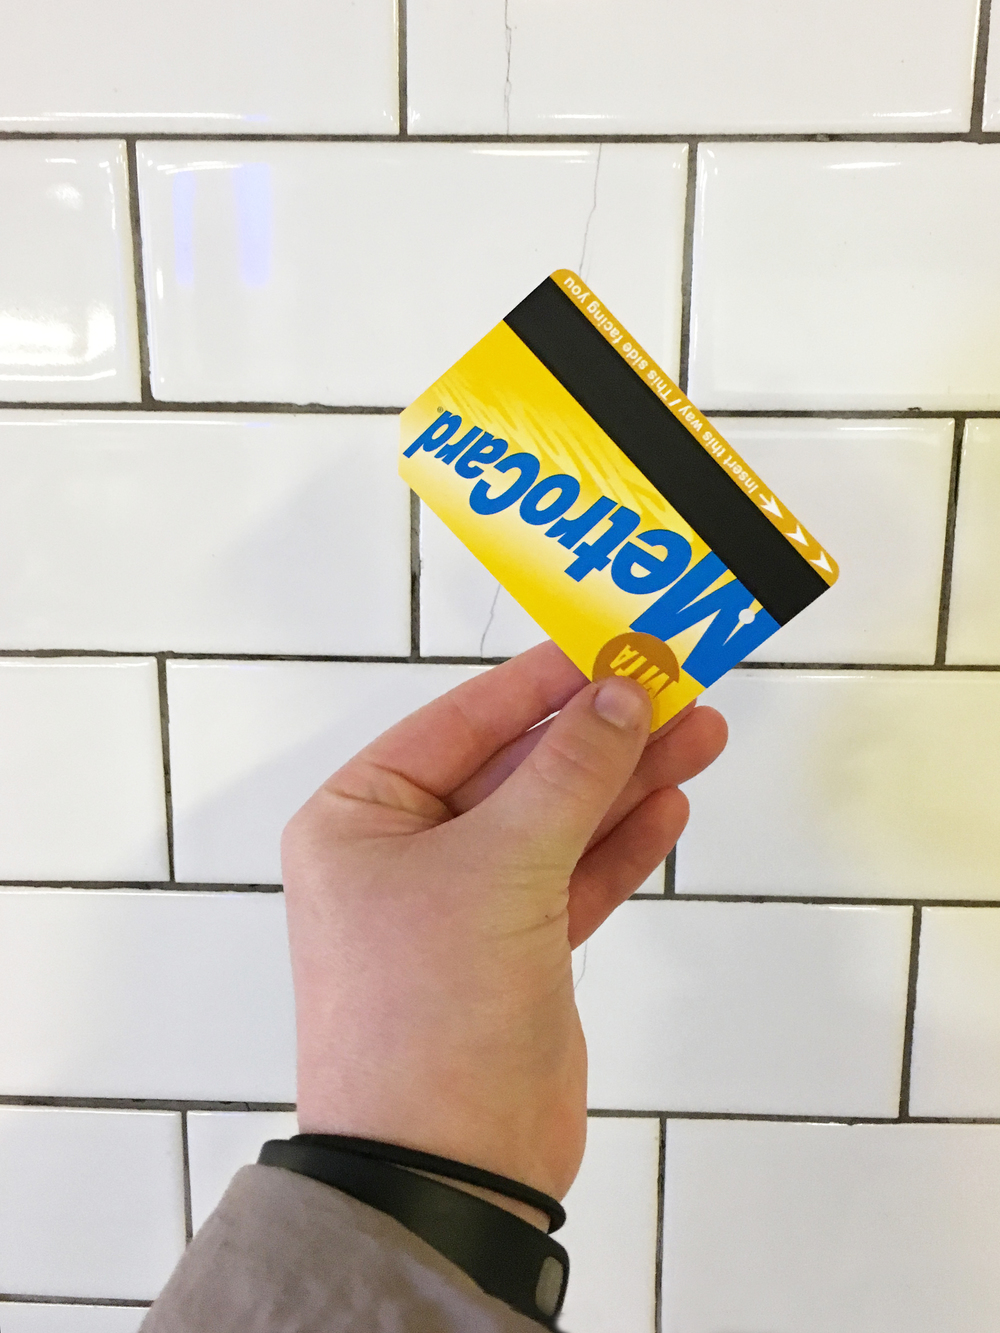 Once again, whip out the trusty metro card. Admit one to traindom, check.